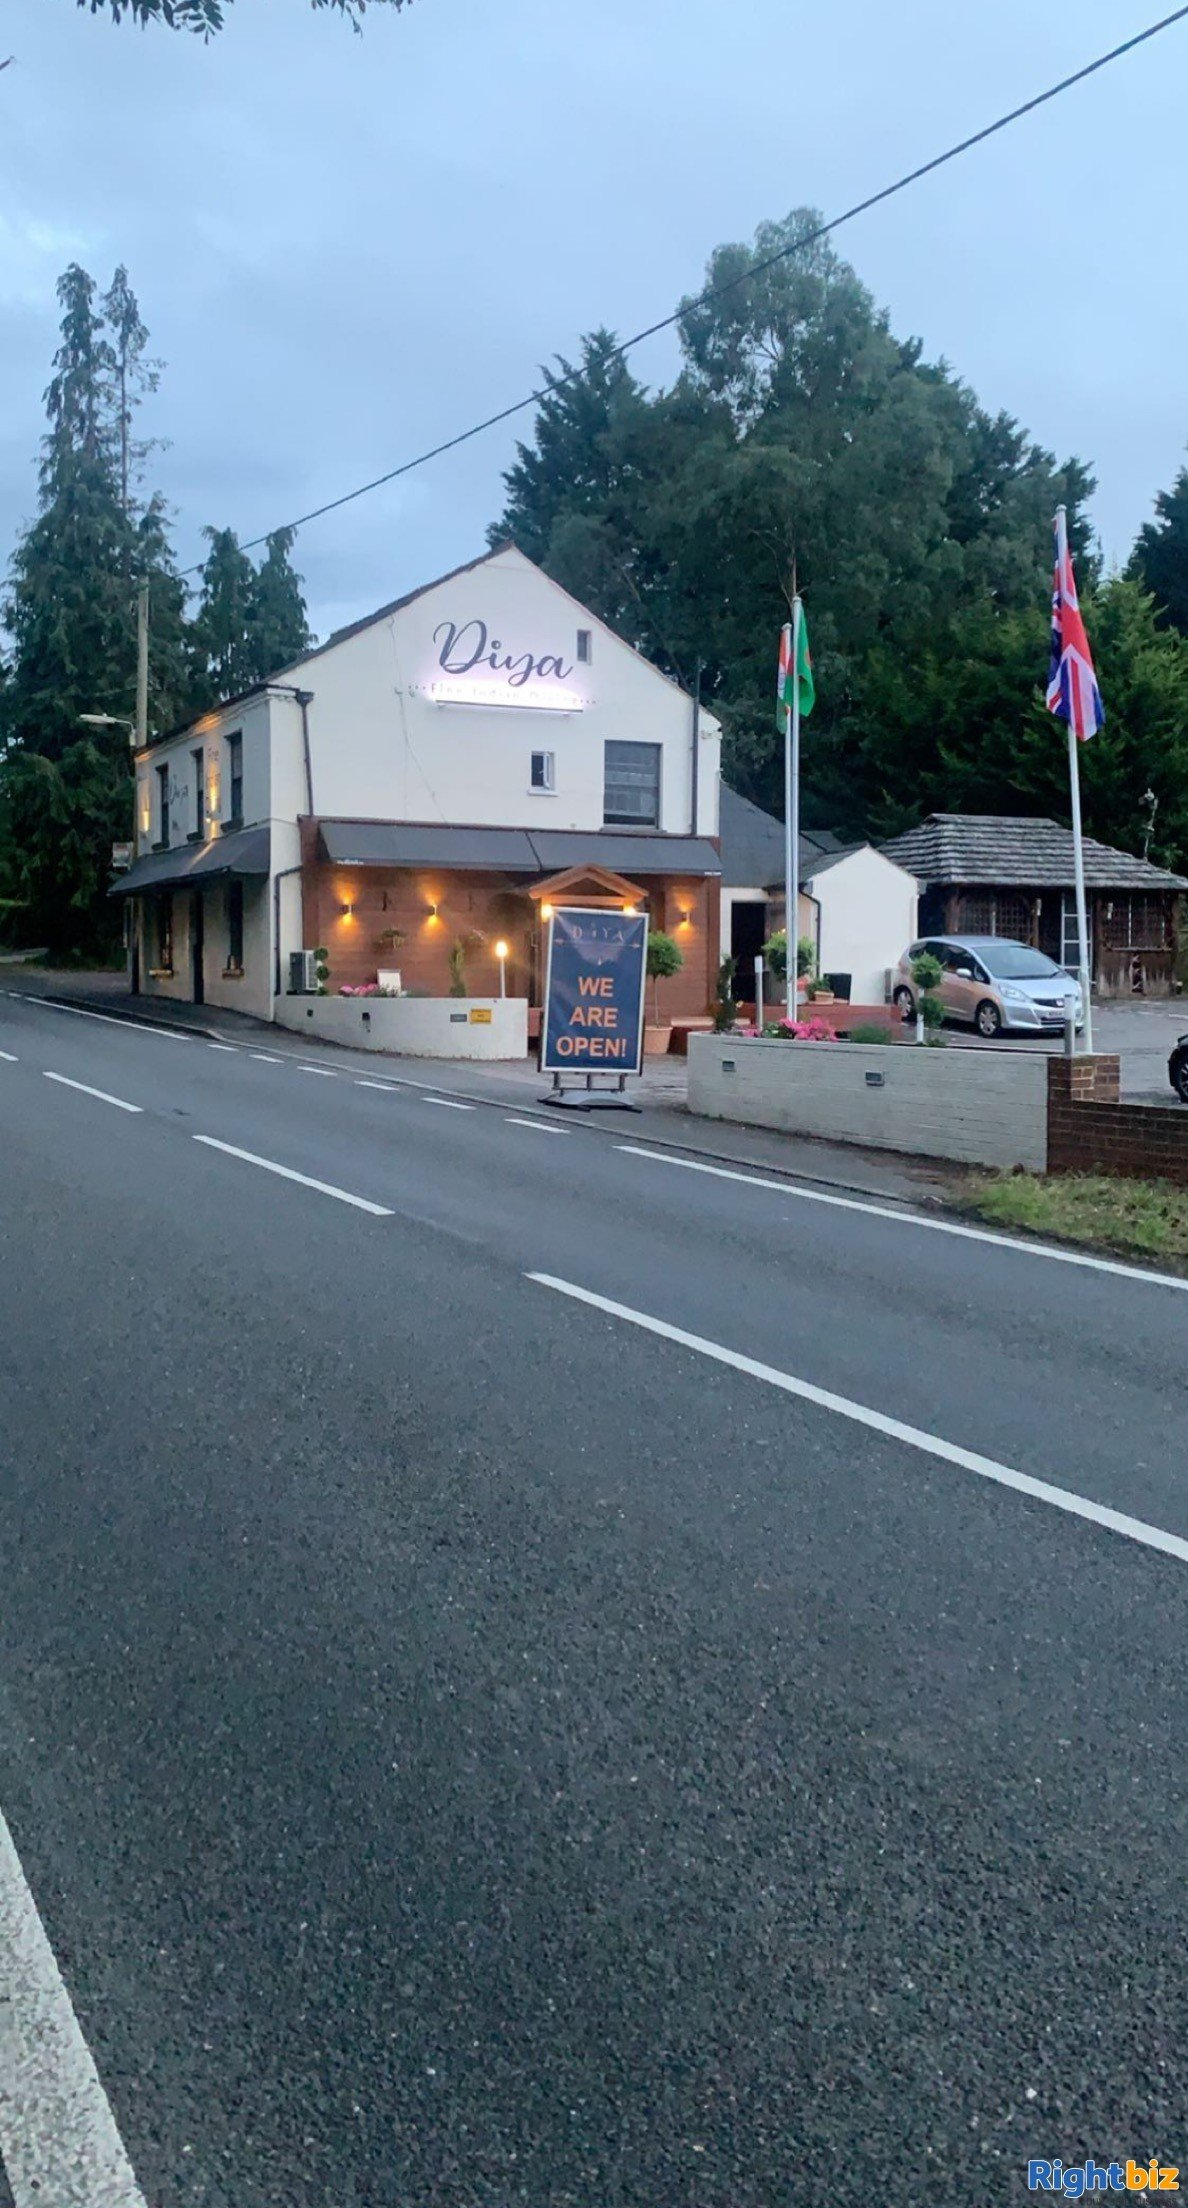 Leasehold Indian Restaurant for Sale **CHEAP** - Image 1